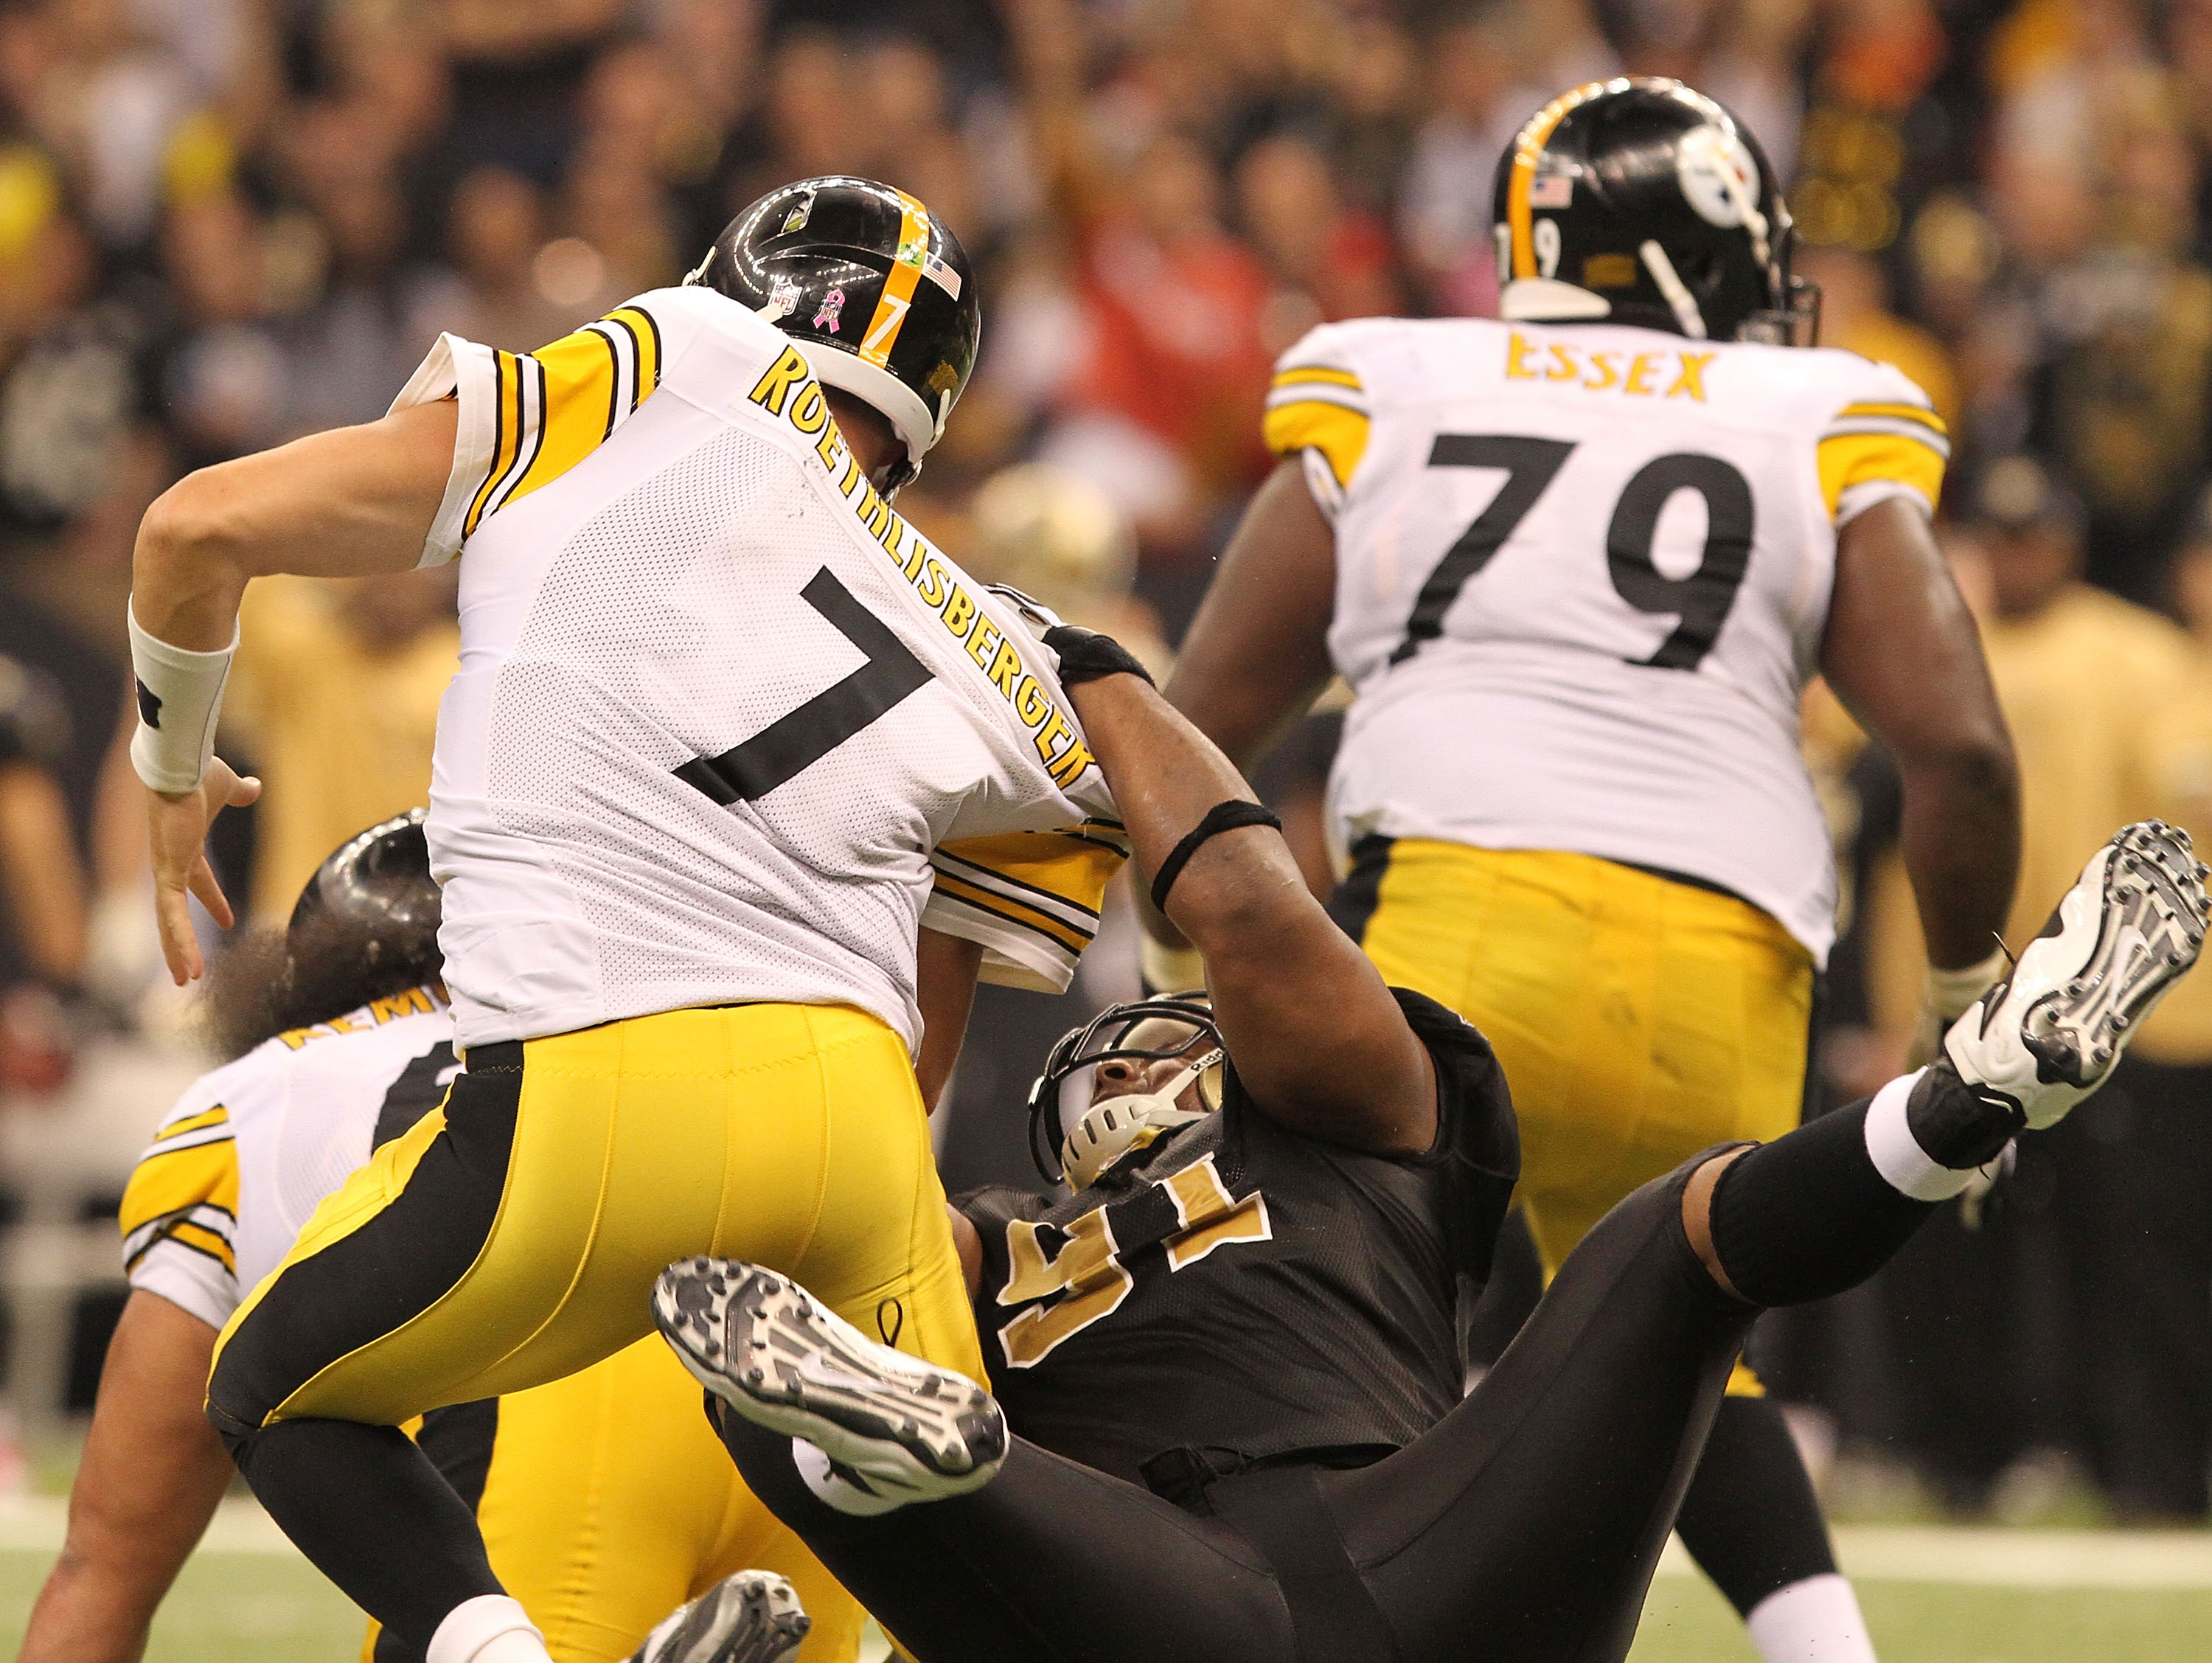 NEW ORLEANS - OCTOBER 31: Will Smith #91 of the New Orleans Saints sacks Ben Roethlisberger #7of the Pittsburgh Steelers at the Louisiana Superdome on October 31, 2010 in New Orleans, Louisiana. (Photo by Matthew Sharpe/Getty Images)